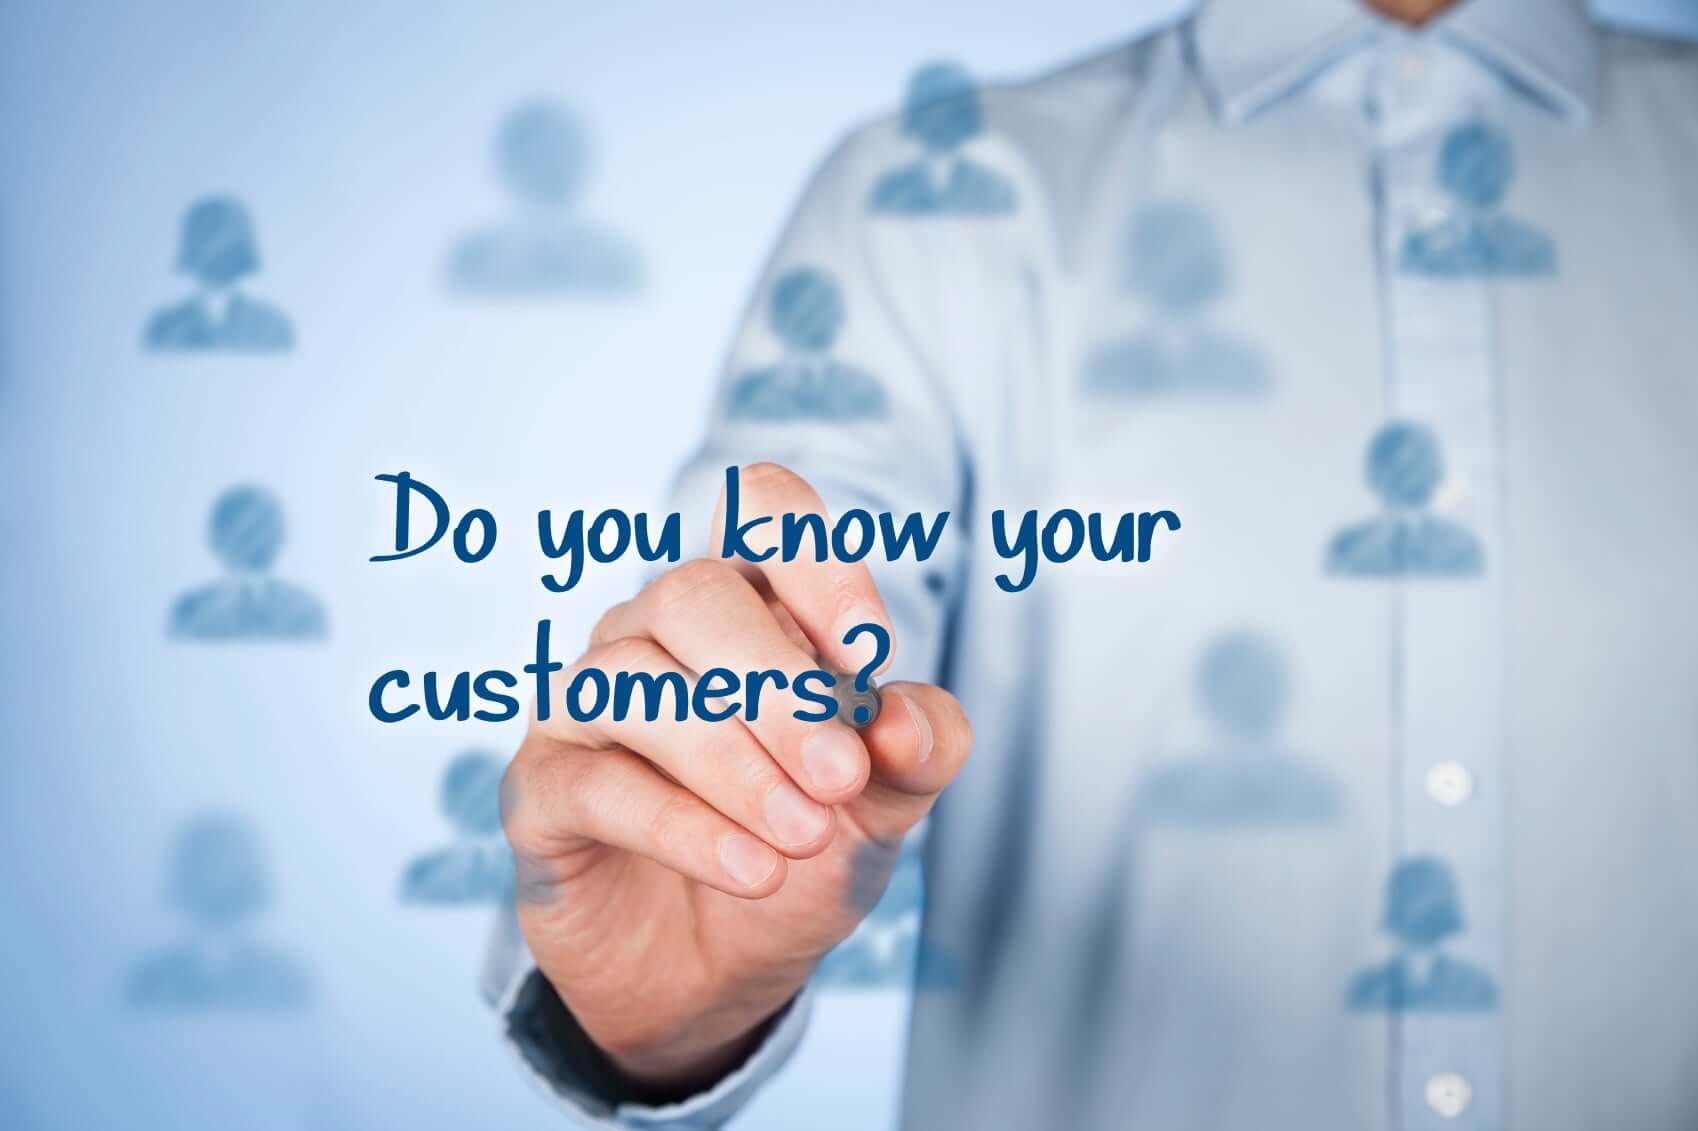 7 Proven Ways to Build Exceptional Customer Relationships